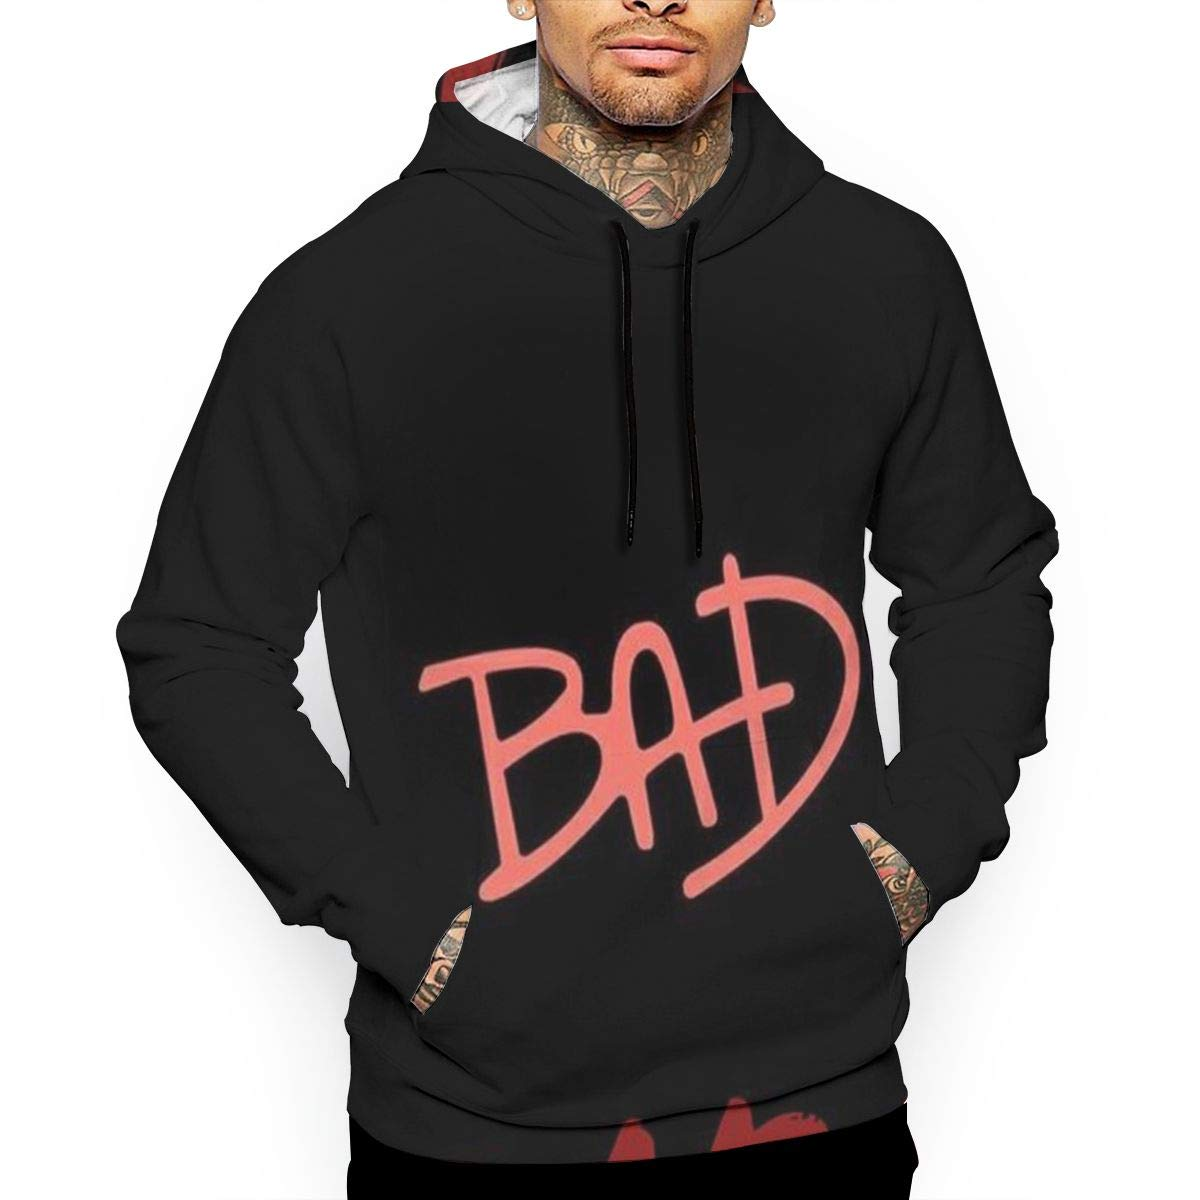 Bad Girl T-Shirt Hooded with A Pocket Rope Hat Customization Fashion Novelty 3D Mens